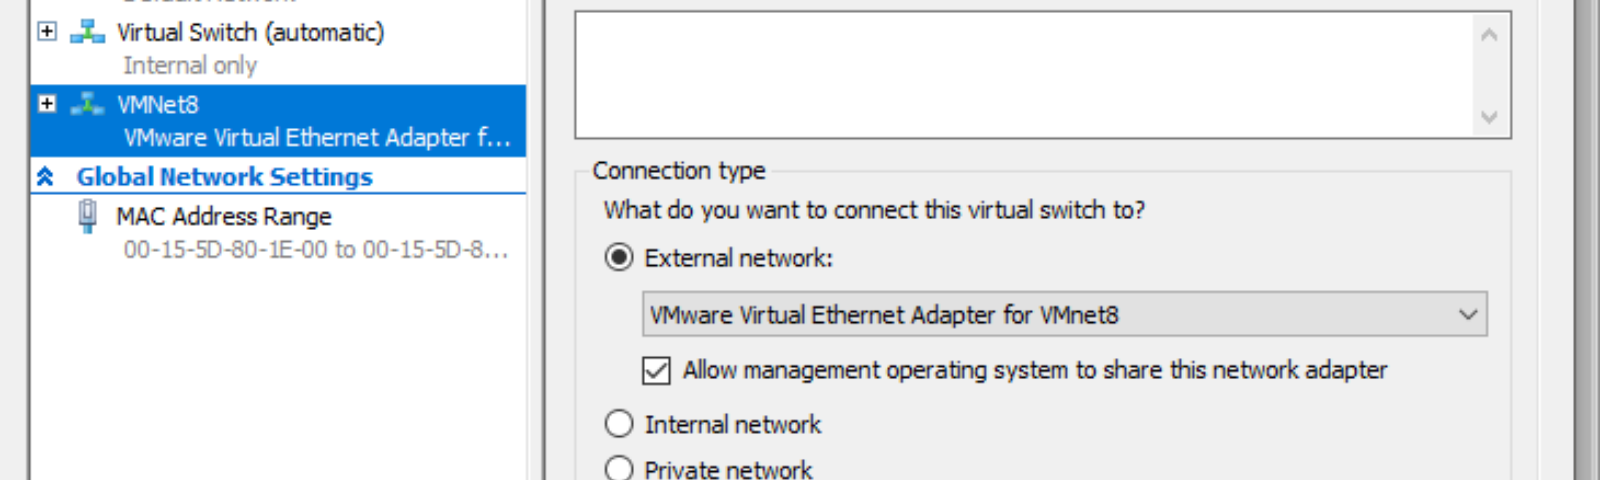 Enable easy NAT and DHCP Connectivity for your Hyper-V Virtual Machines